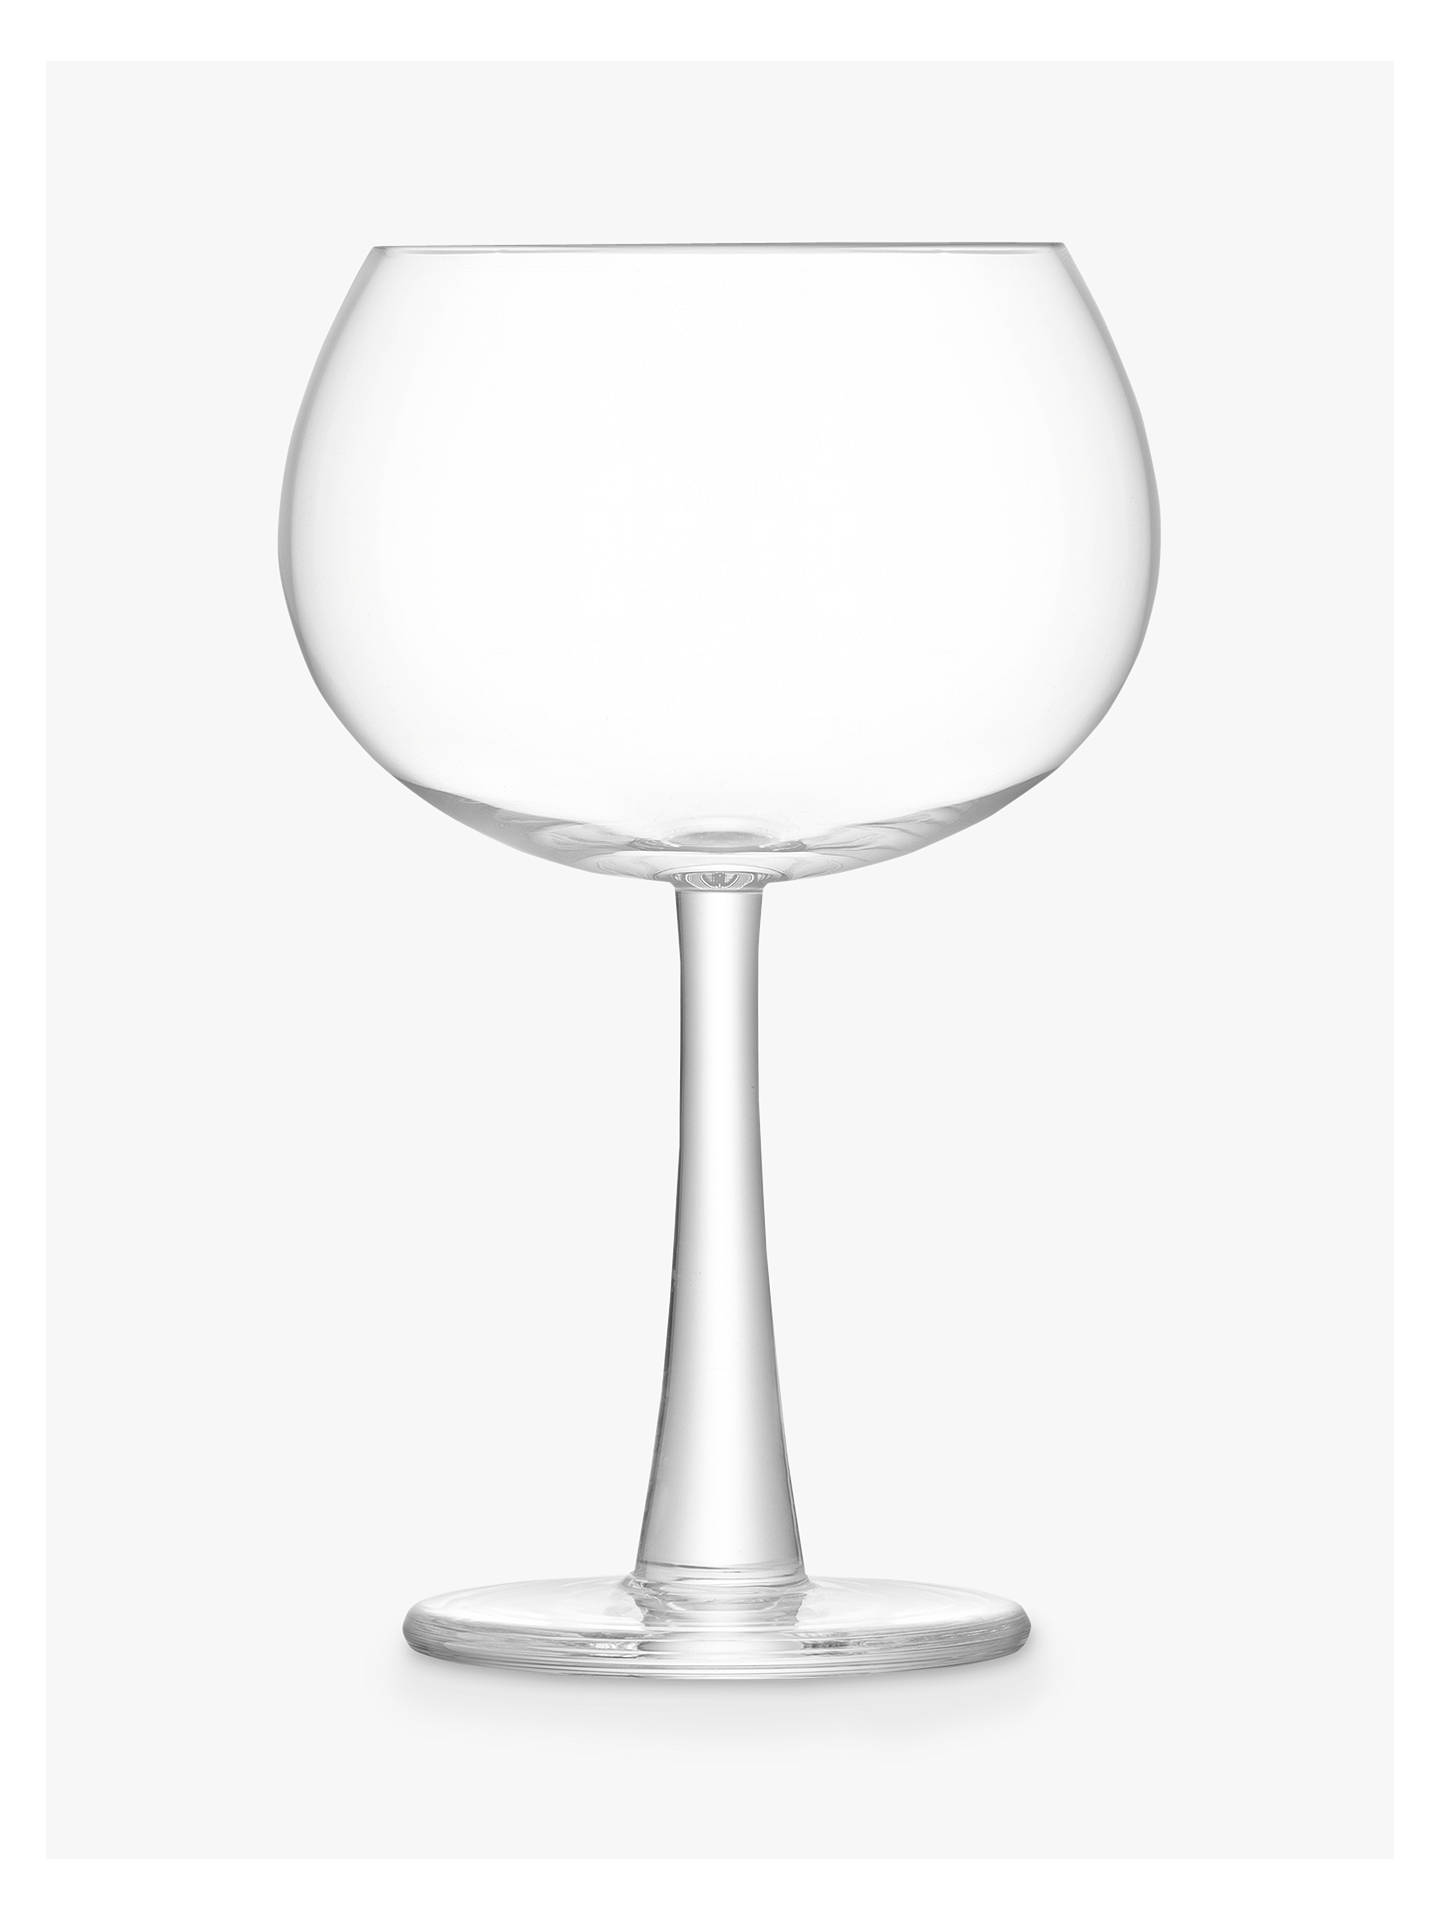 BuyLSA International Gin Balloon Glass, 420ml, Set of 2 Online at johnlewis.com